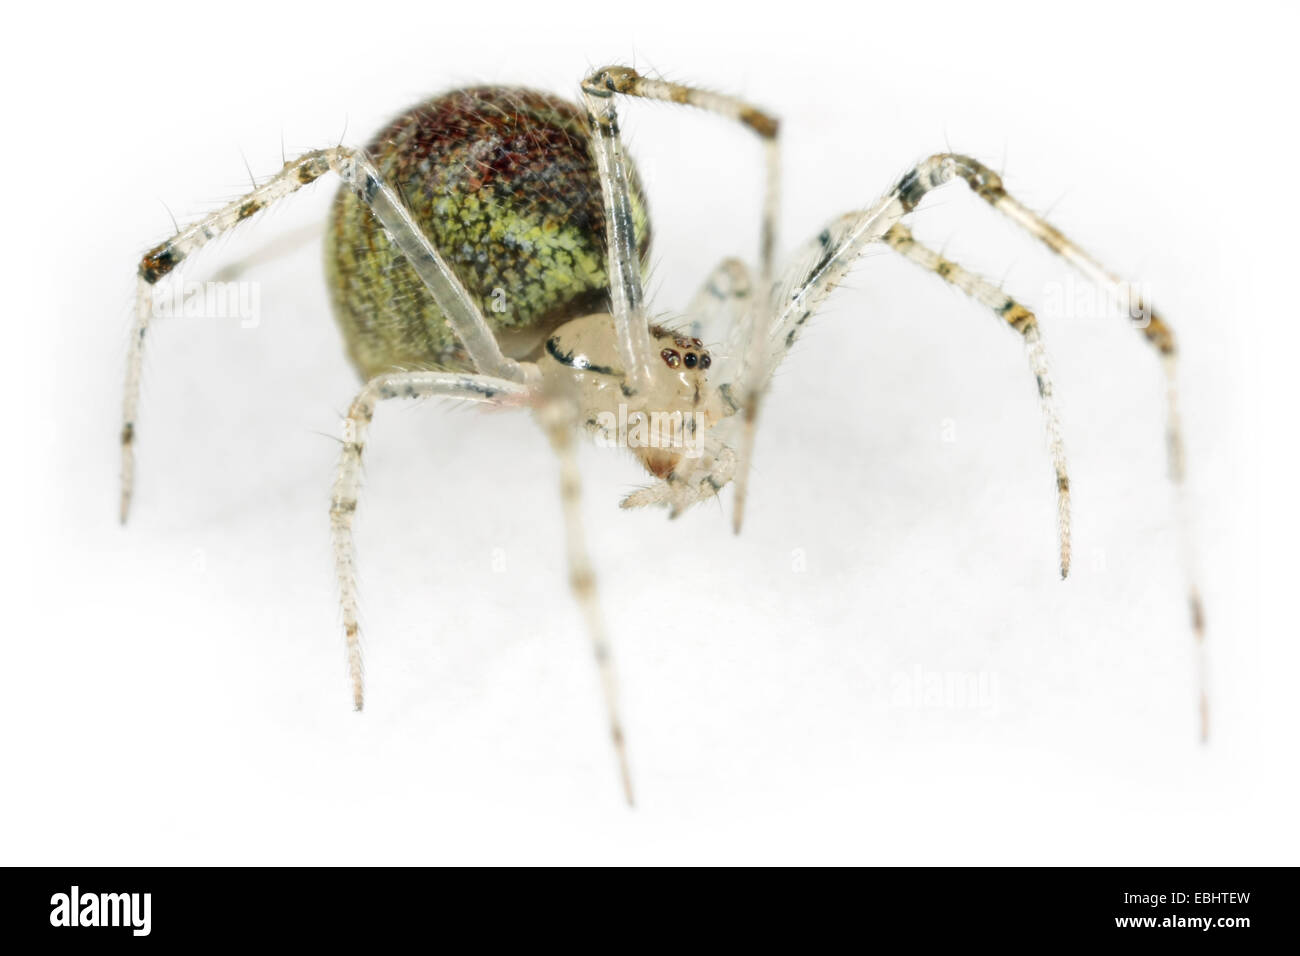 A female Theridion varians spider, on a white background, part of the family Theridiidae - Comb-Footed spiders. - Stock Image